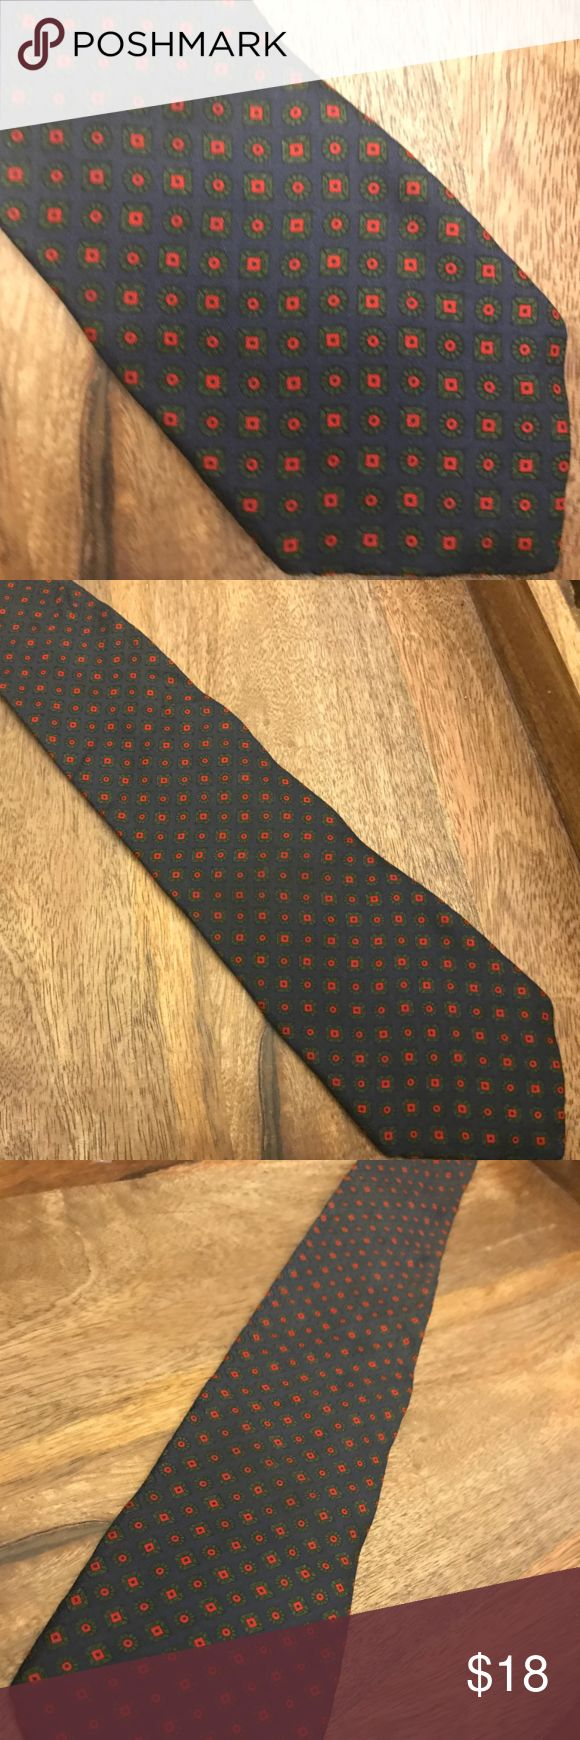 The Burlington Knot Company by J. Press Silk Tie Classic American Style isn't created in an instant. It takes time. In fact, it takes generations worth of thoughtful refinement and an unwavering commitment to dress men to an Ivy League standard. J. Press began on the ground of Yale University in 1902 and has been a fixture of the campus ever since. Jacobi Press believed in quality above all else. It's a belief that earned him the esteem of US Presidents, statesmen, scholars and captains of…